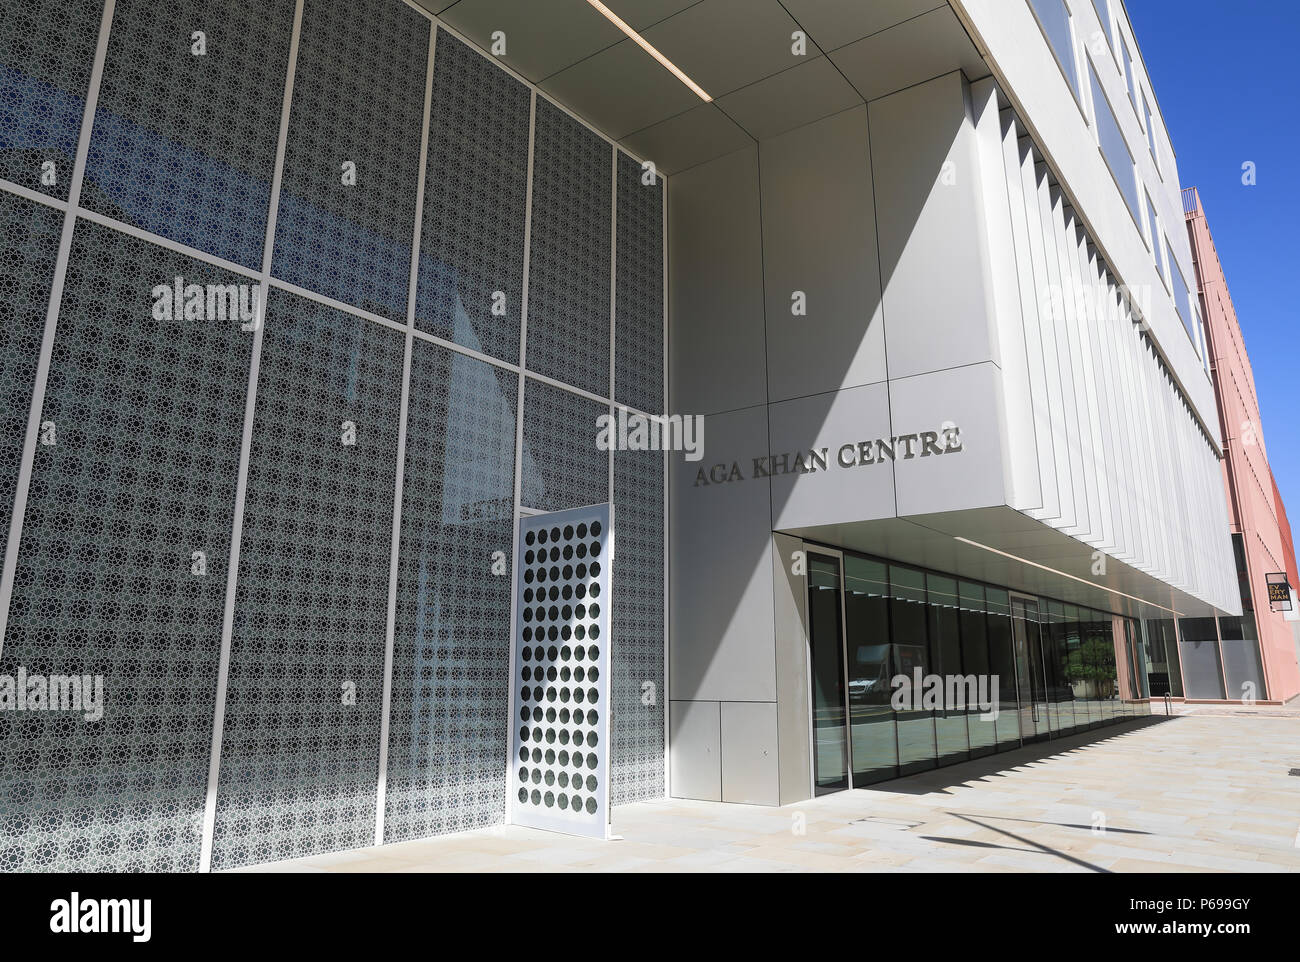 Designed by Japan's Fumihiko Maki, the new Kings Cross Aga Khan Centre shows the wonders of the Islamic world, in London, UK - Stock Image